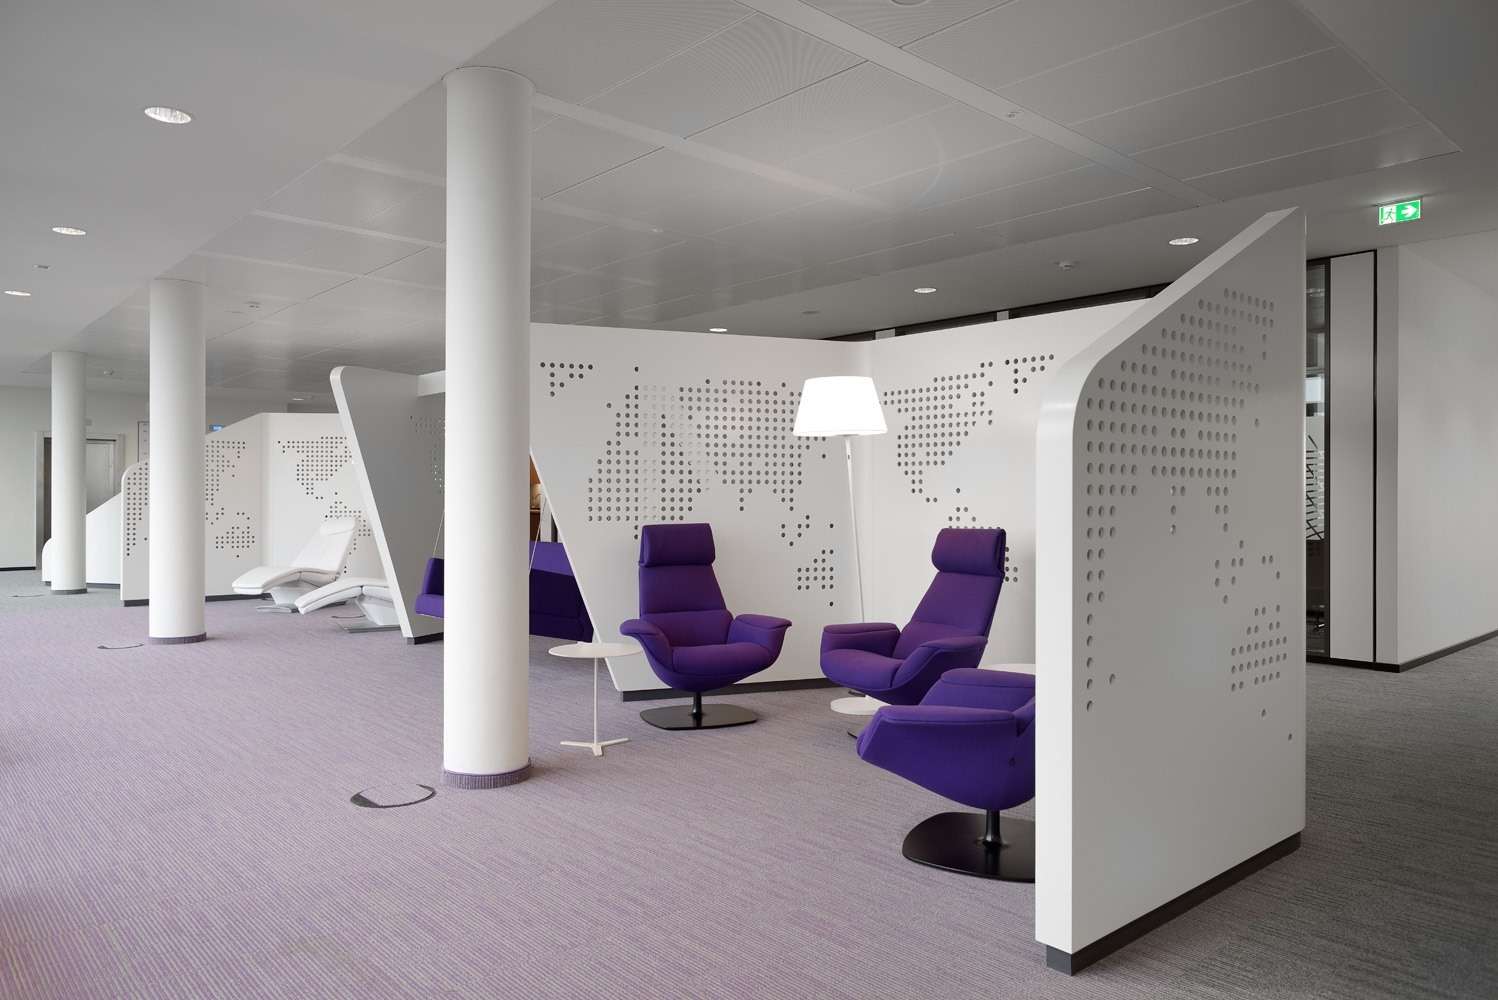 a tour of philips new hamburg headquarters officelovin 39. Black Bedroom Furniture Sets. Home Design Ideas